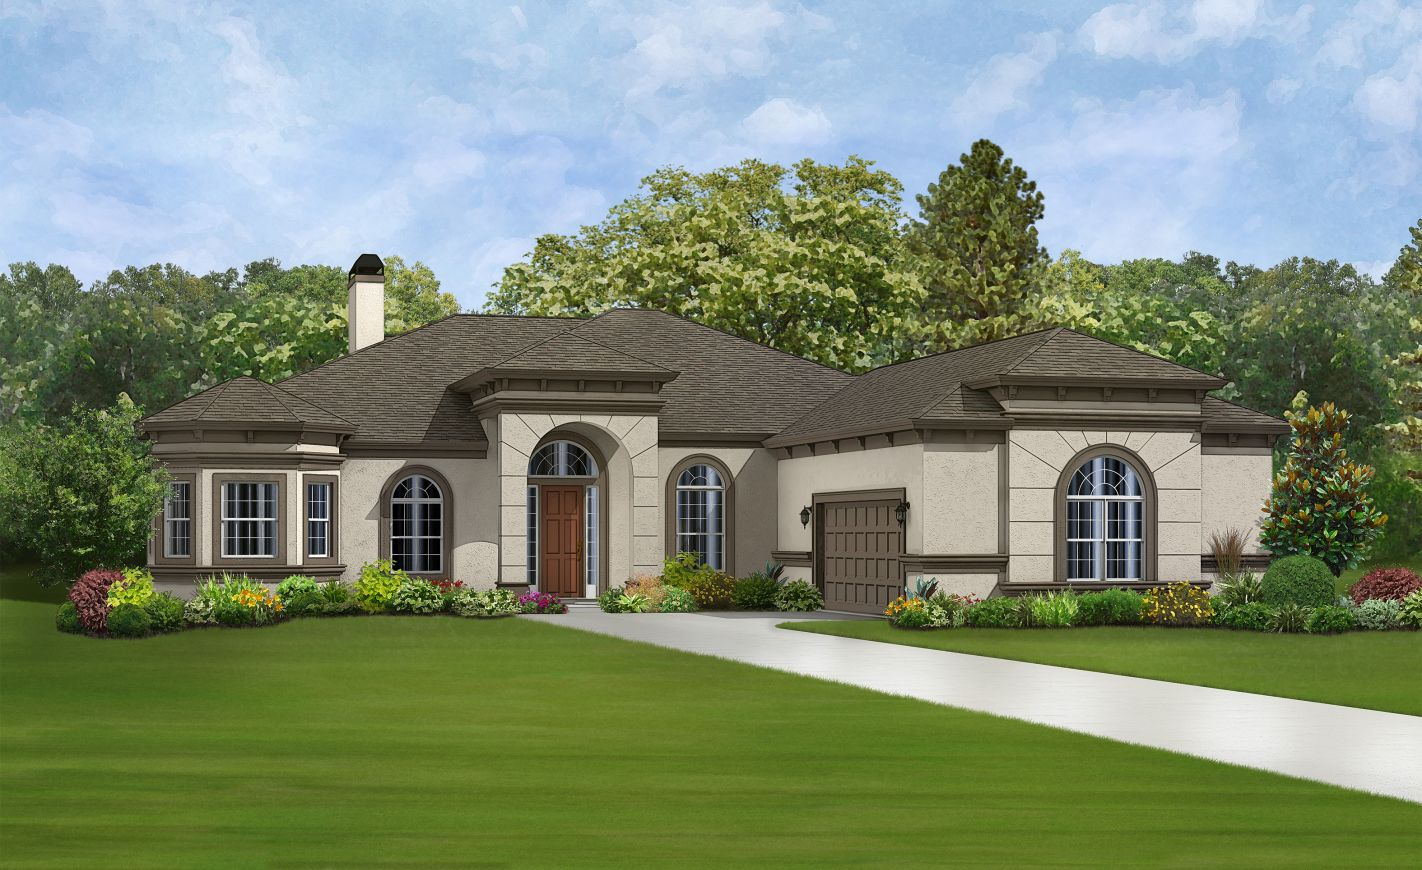 New Homes In Julington Creek St Johns Ici Homes